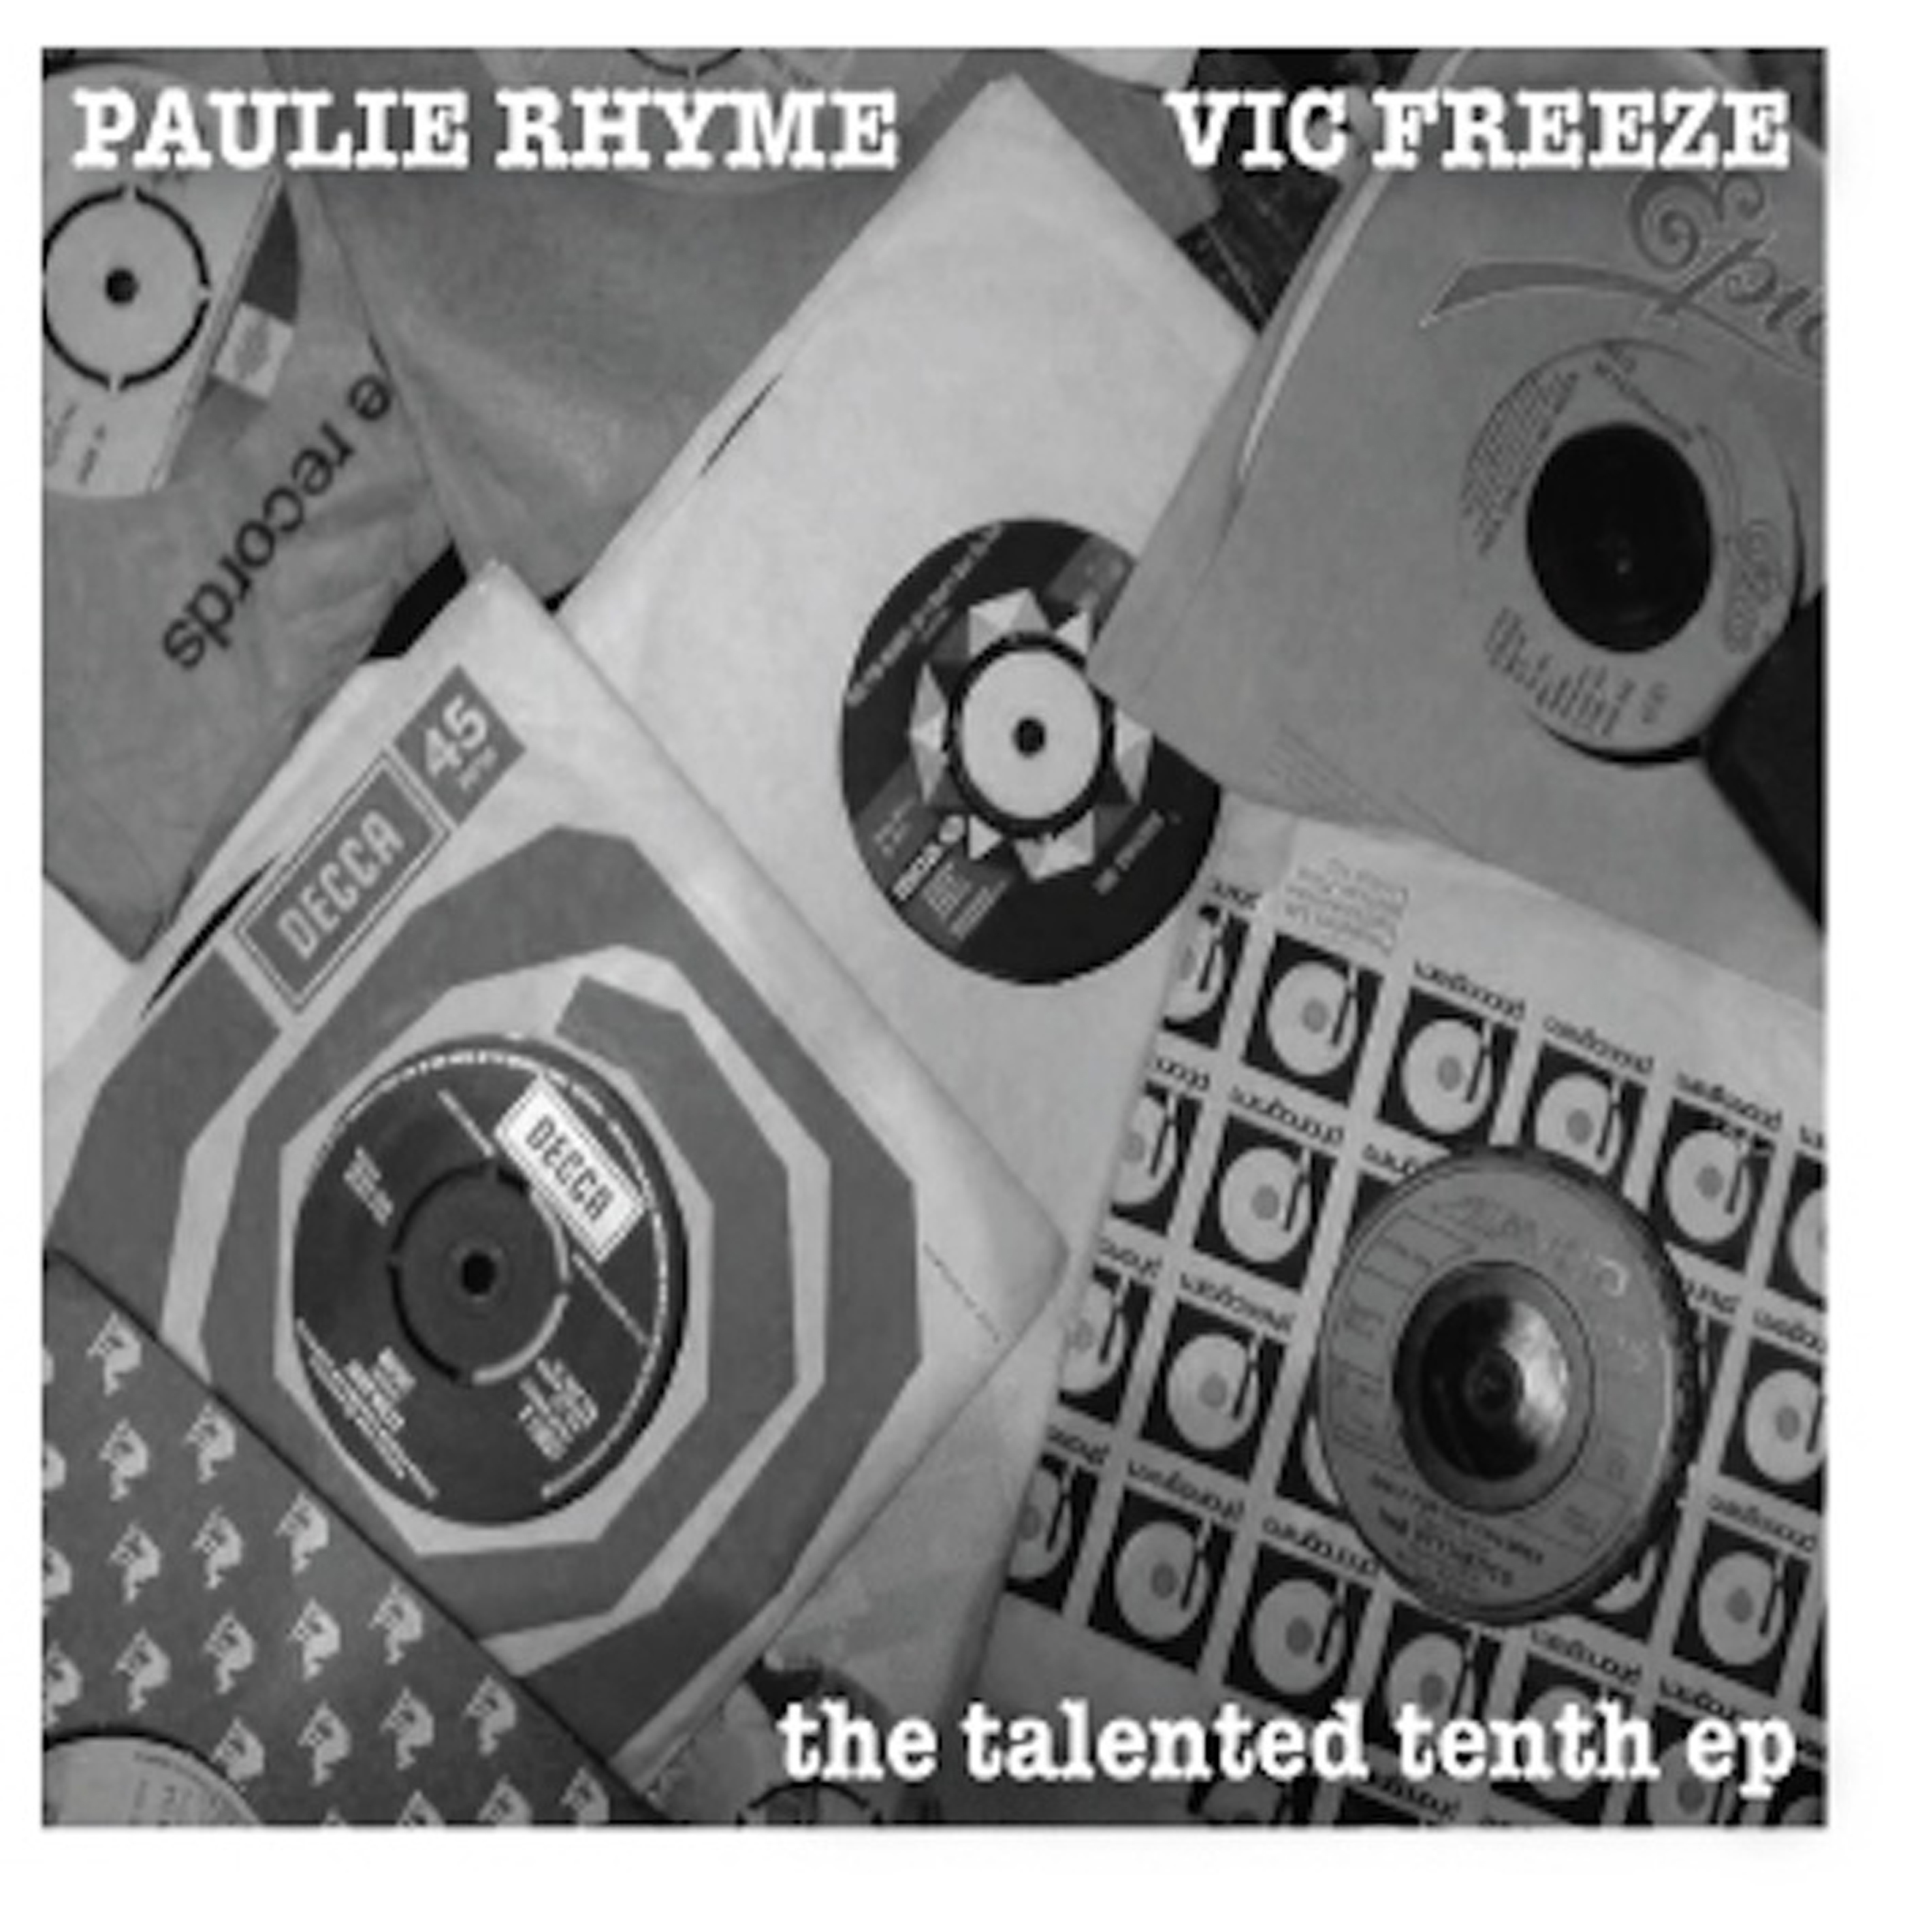 Paulie Rhyme & Vic Freeze - The Talented Tenth Ep